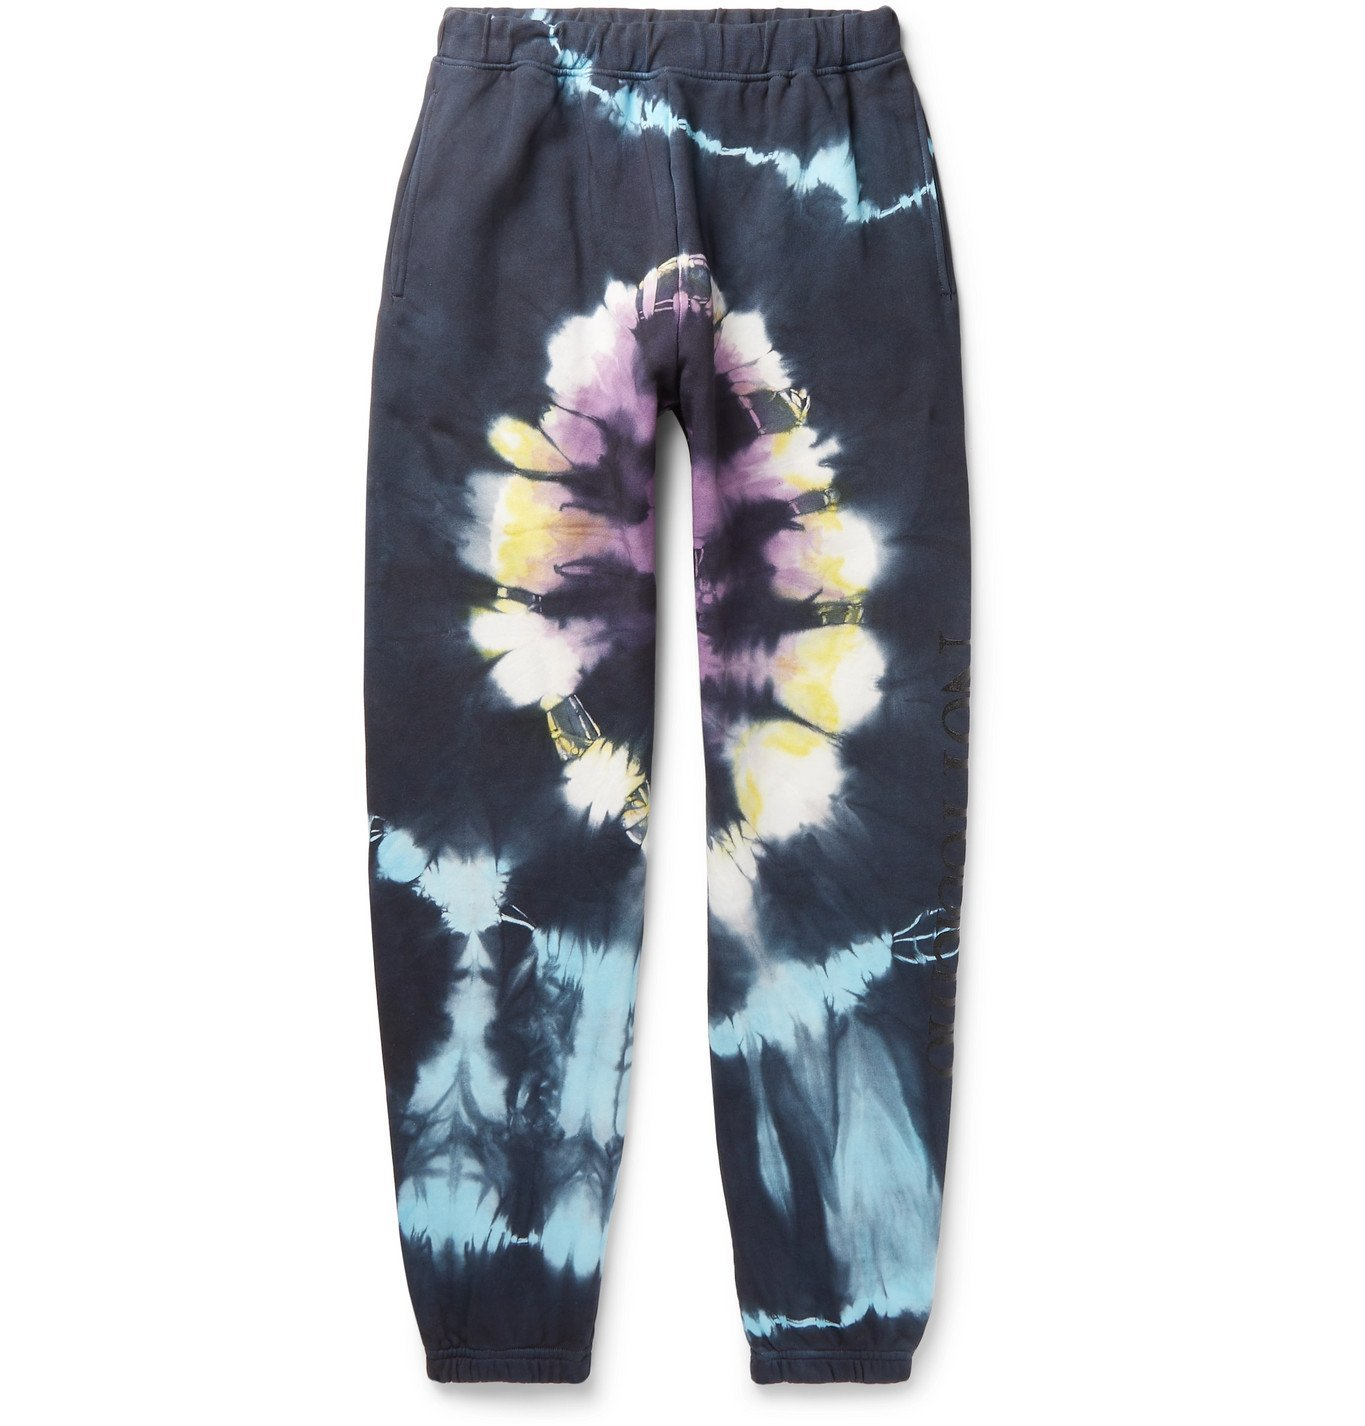 ARIES - No Problemo Headlights Tapered Tie-Dyed Fleece-Back Cotton-Jersey Sweatpants - Multi